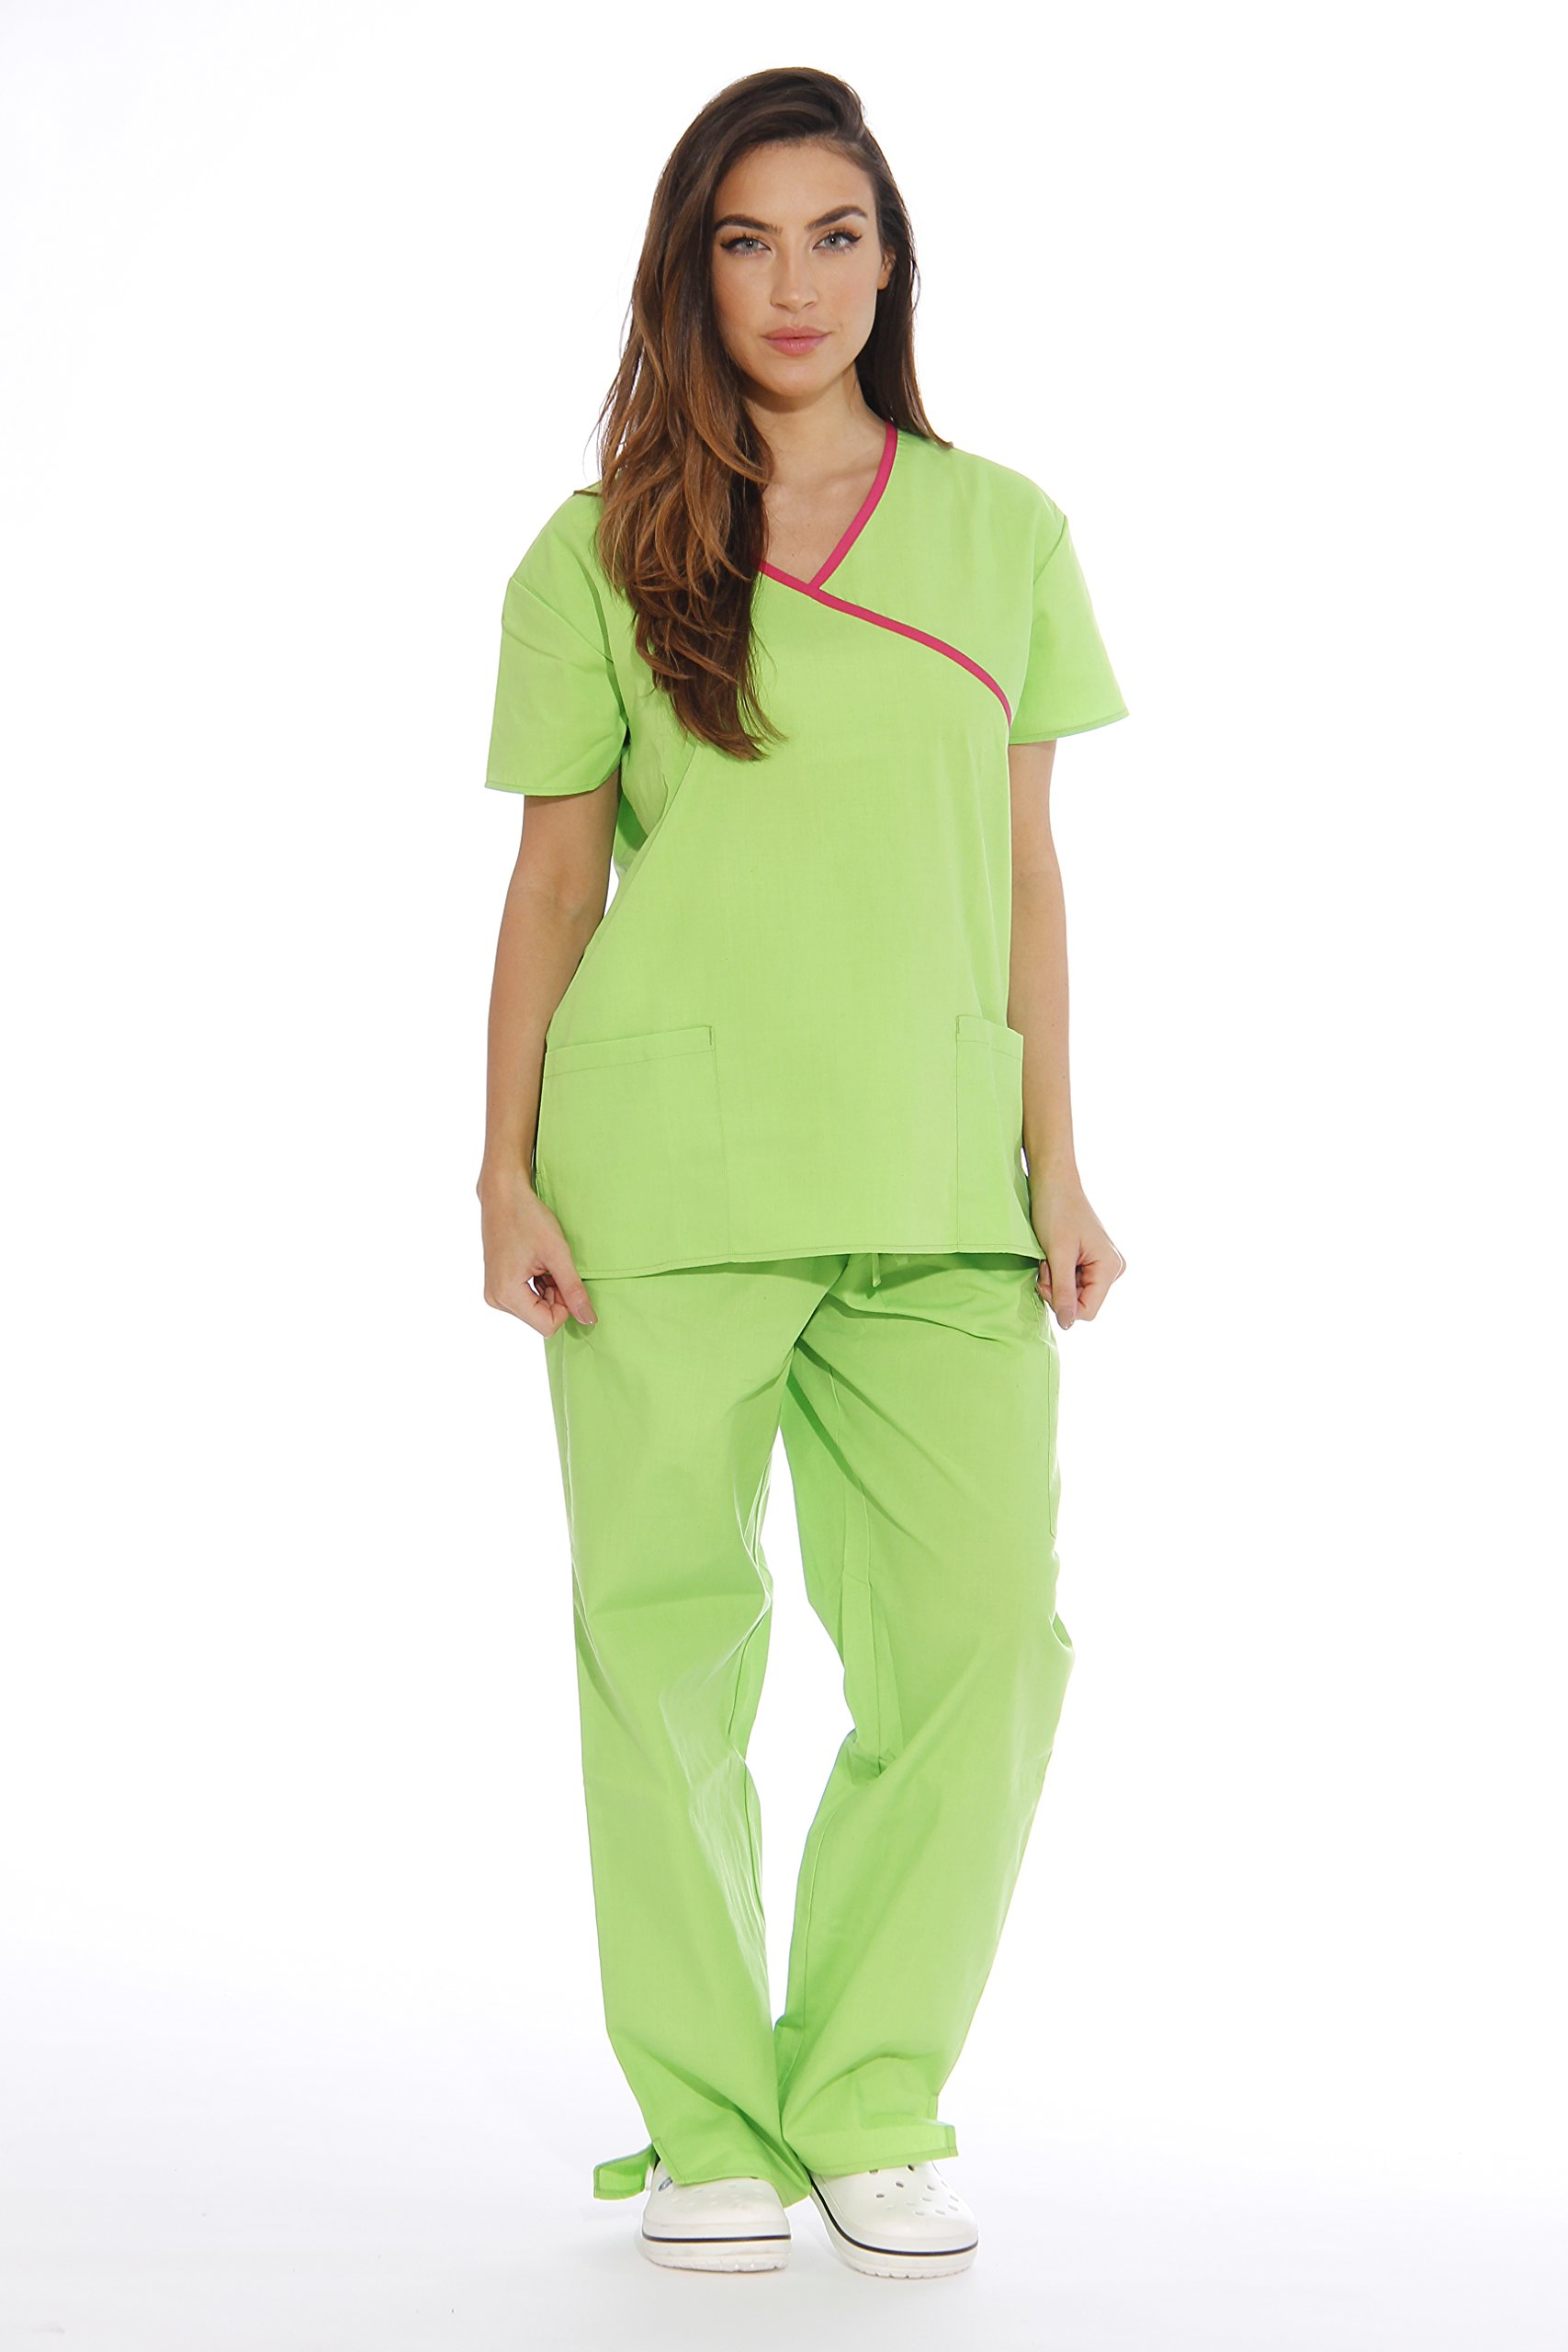 35d416569ab Get Quotations · Just Love Women's Scrub Sets Medical Scrubs (Mock Wrap)